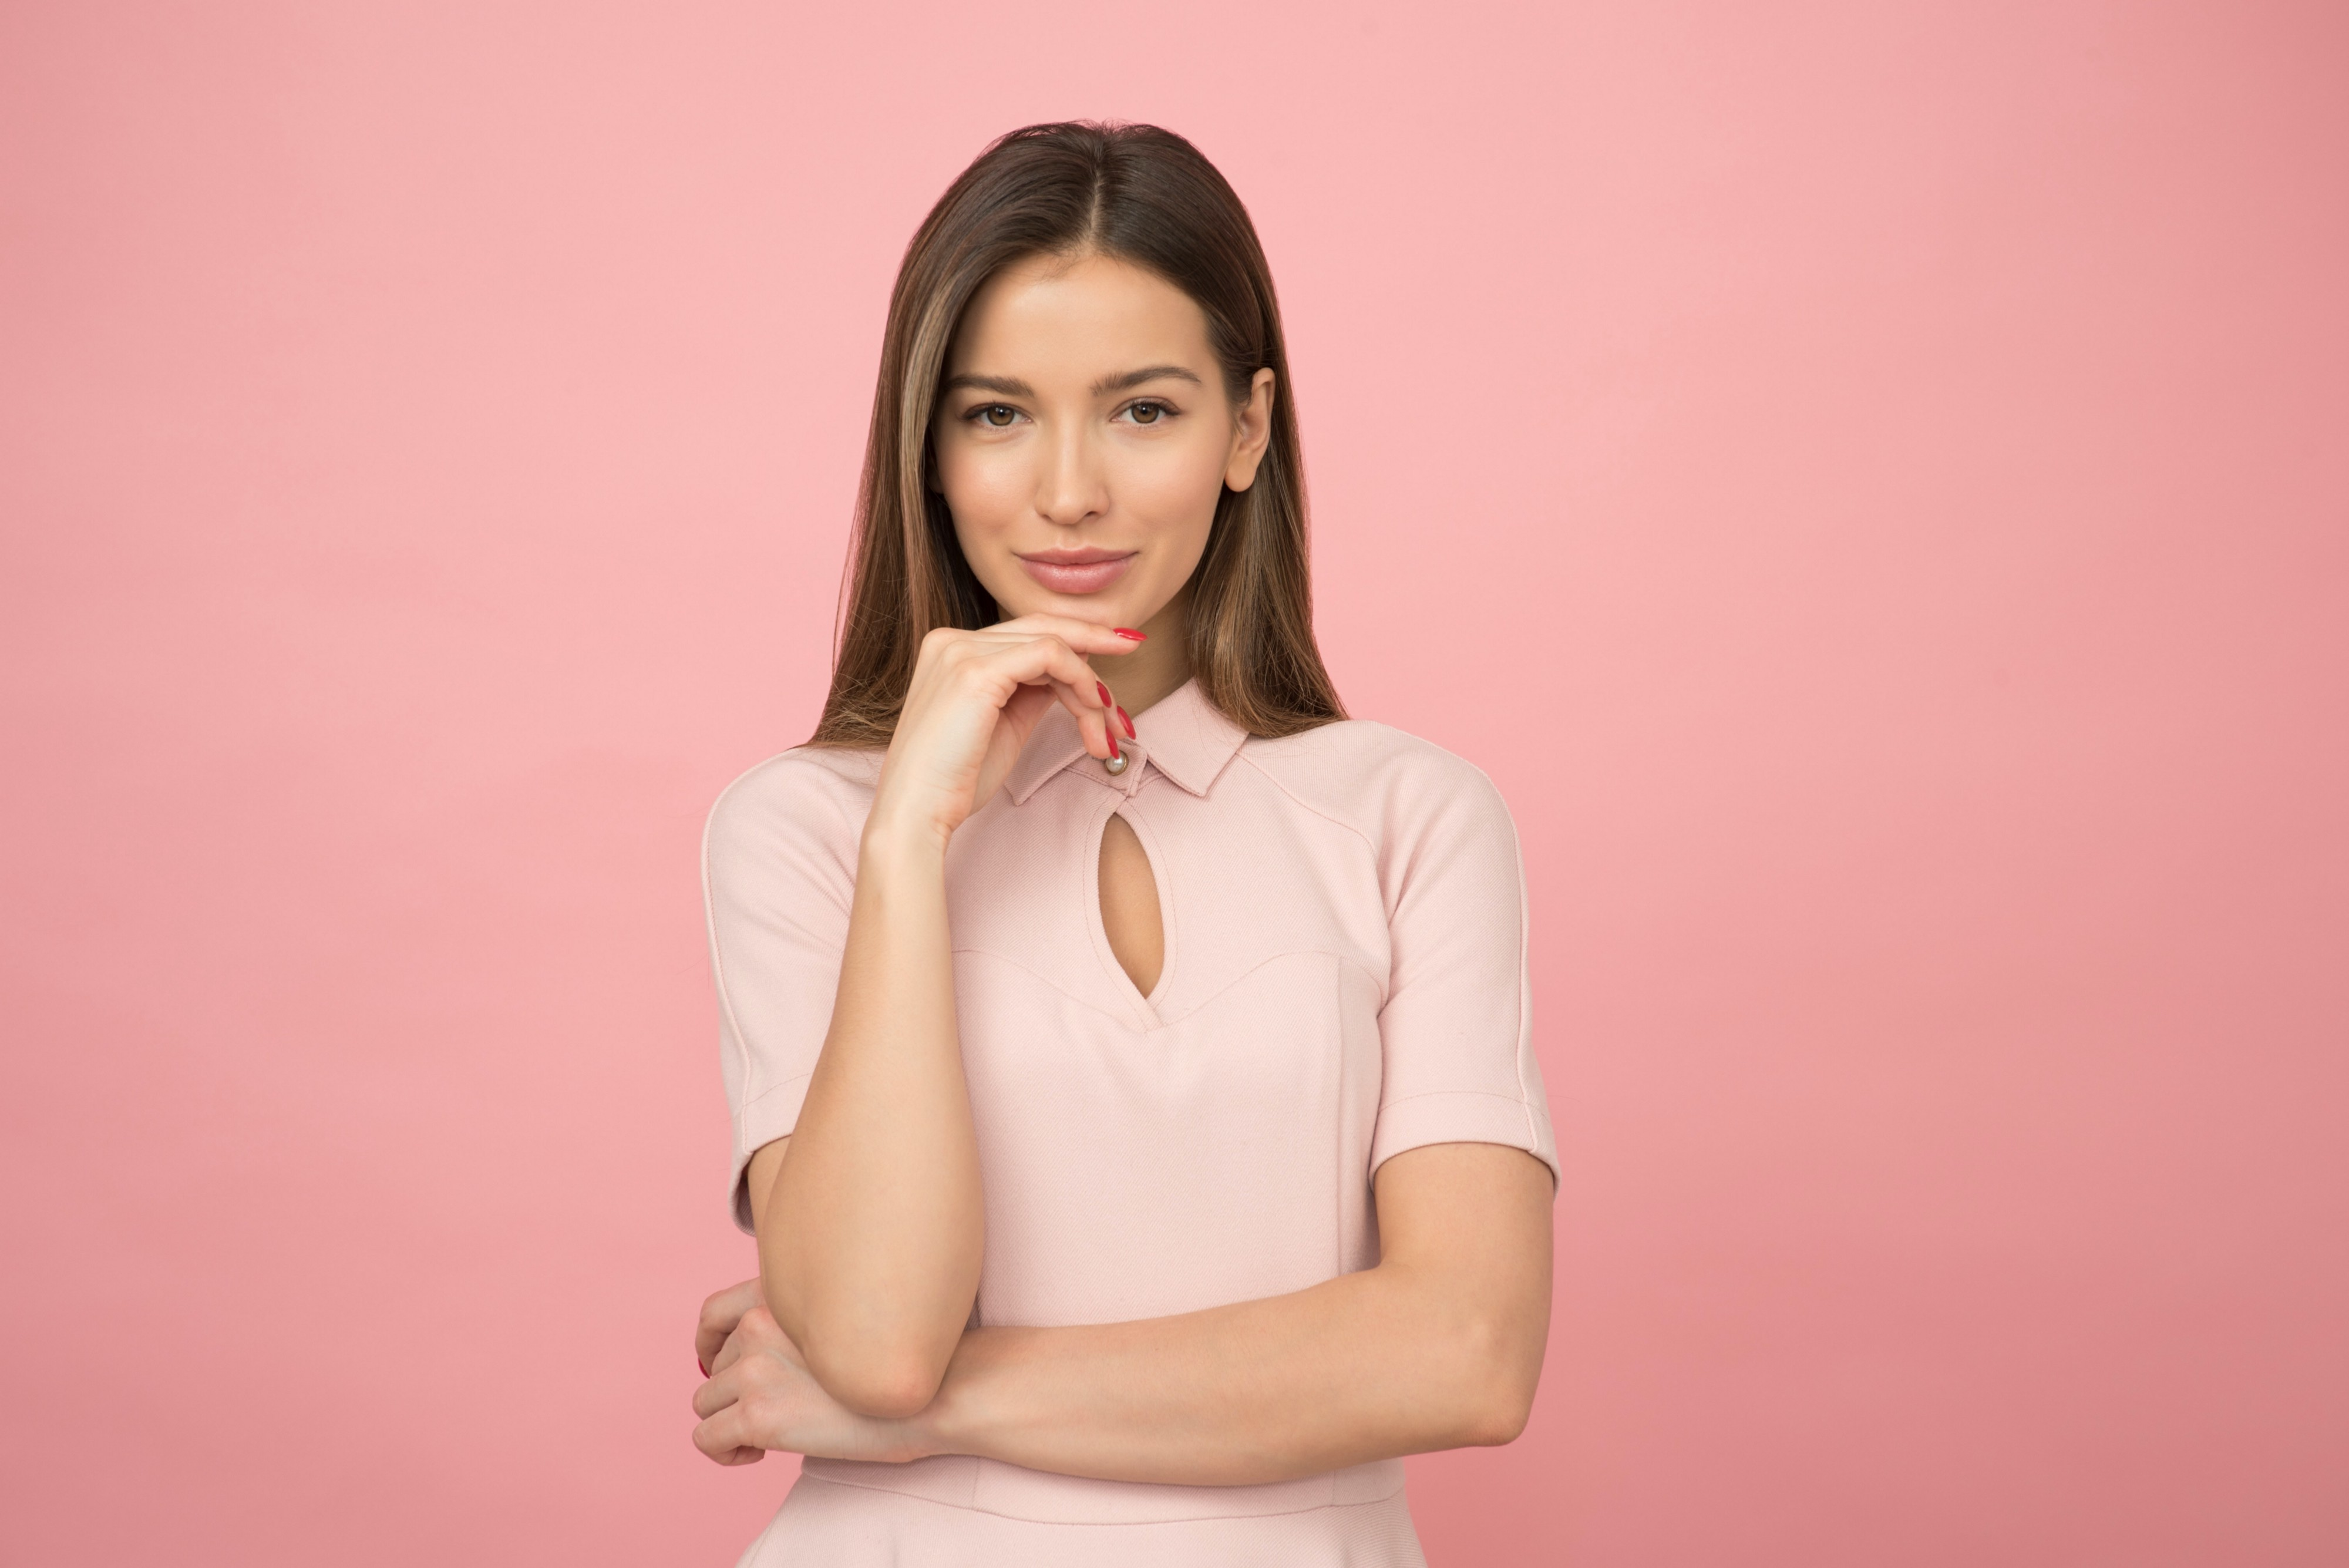 Woman in front of pink screen. 30 minutes of personal development can change your life forever.